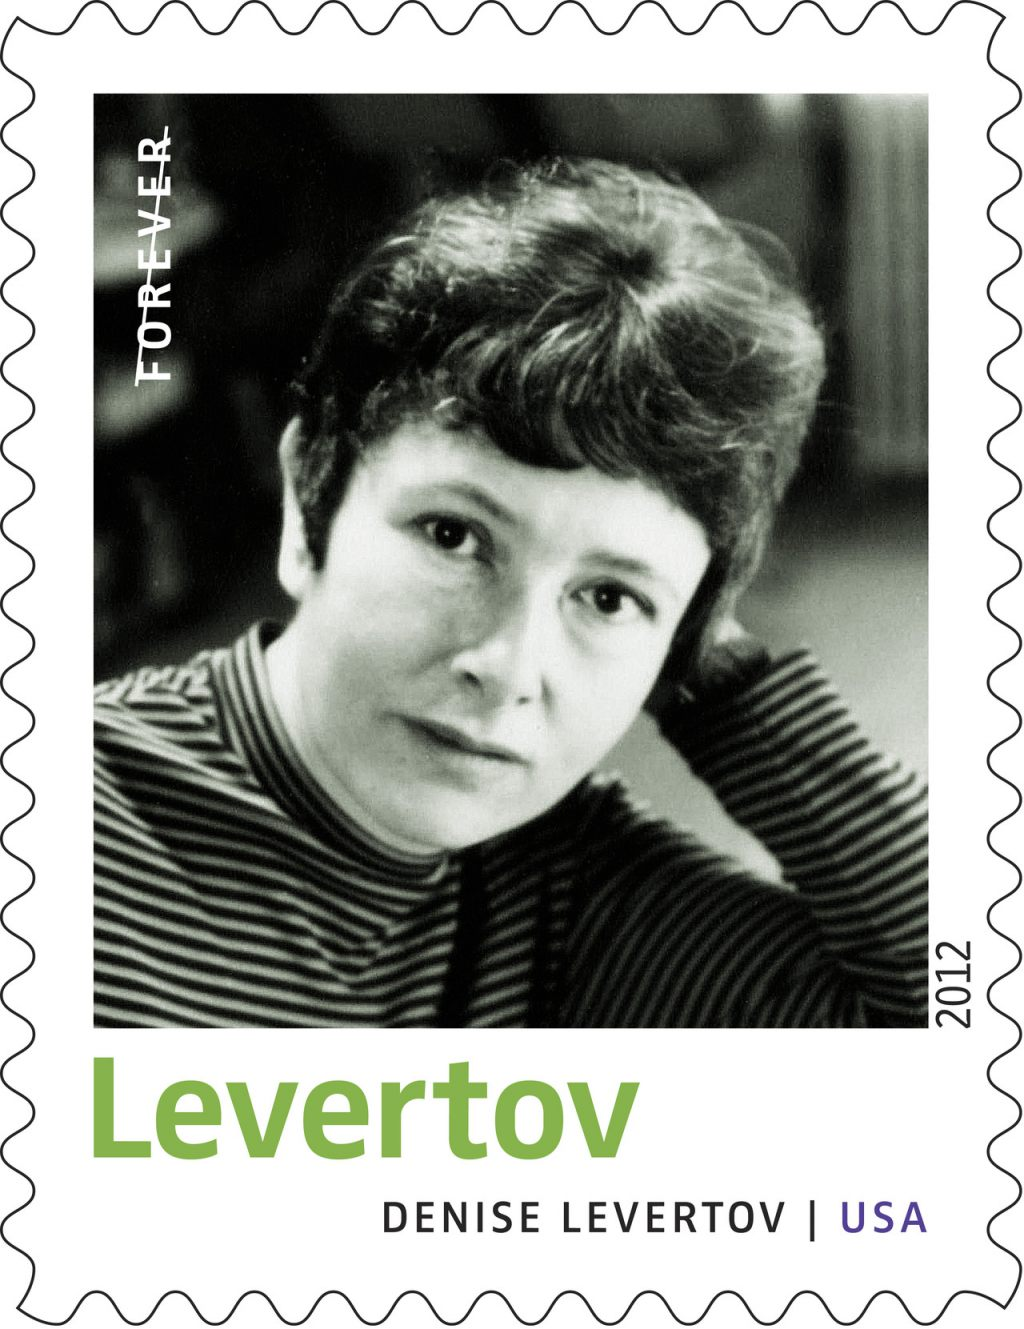 an analysis of denise levertovs wedding ring essay Denise levertov - poet | academy of american poets poetsorg denise levertov was born in ilford, essex, england, on october 24, 1923 her father, raised a hasidic jew, had converted to christianity while attending university in germany.